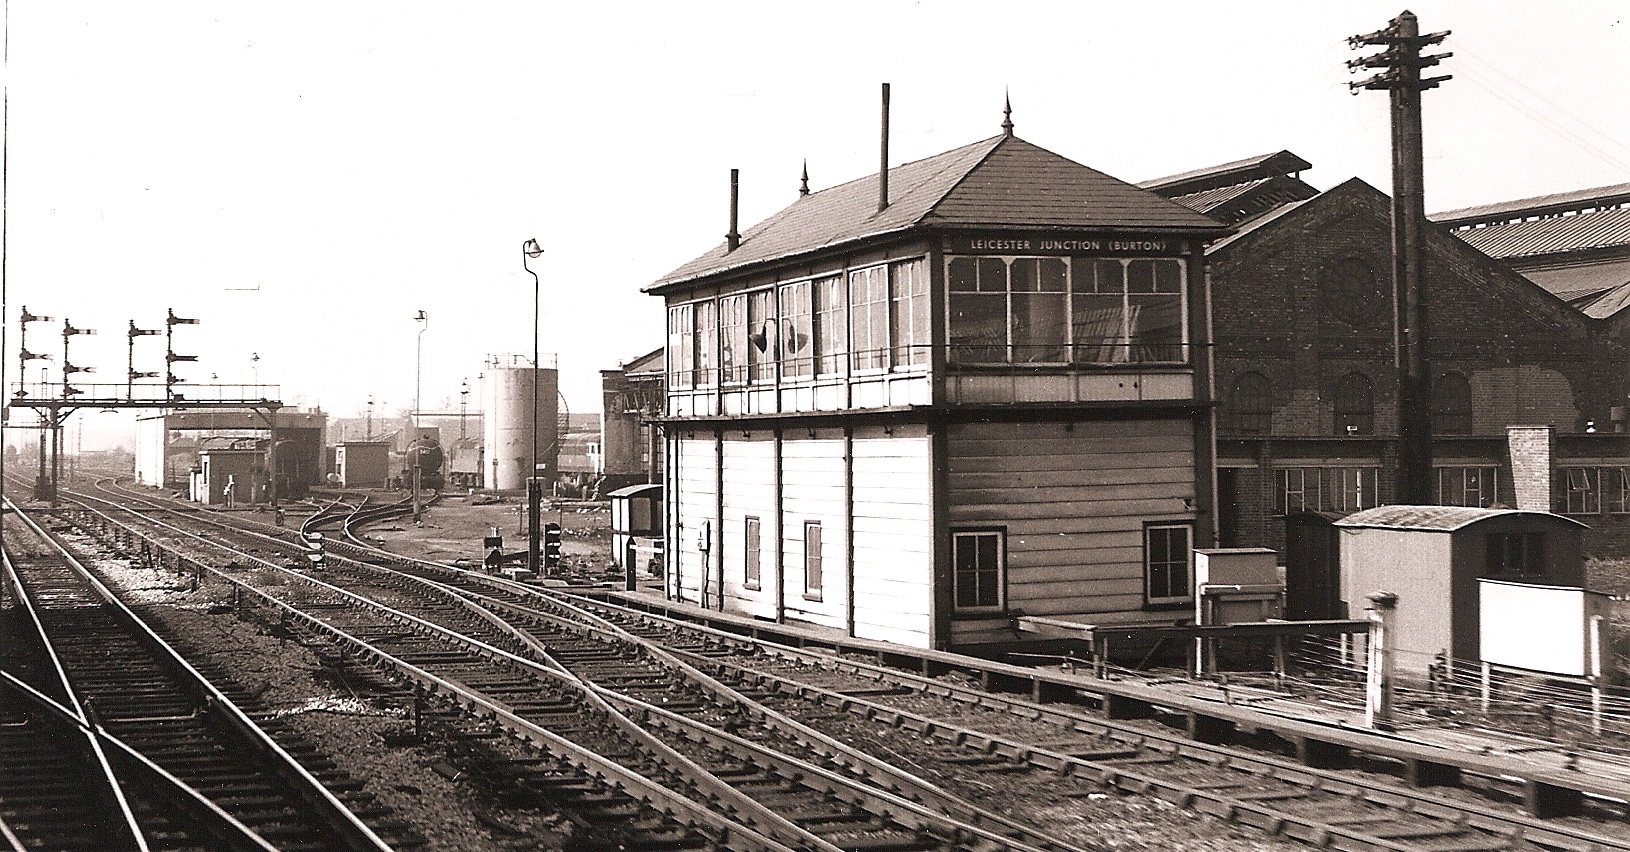 Burton Shed photographed on 5th April 1969 by M.A.King